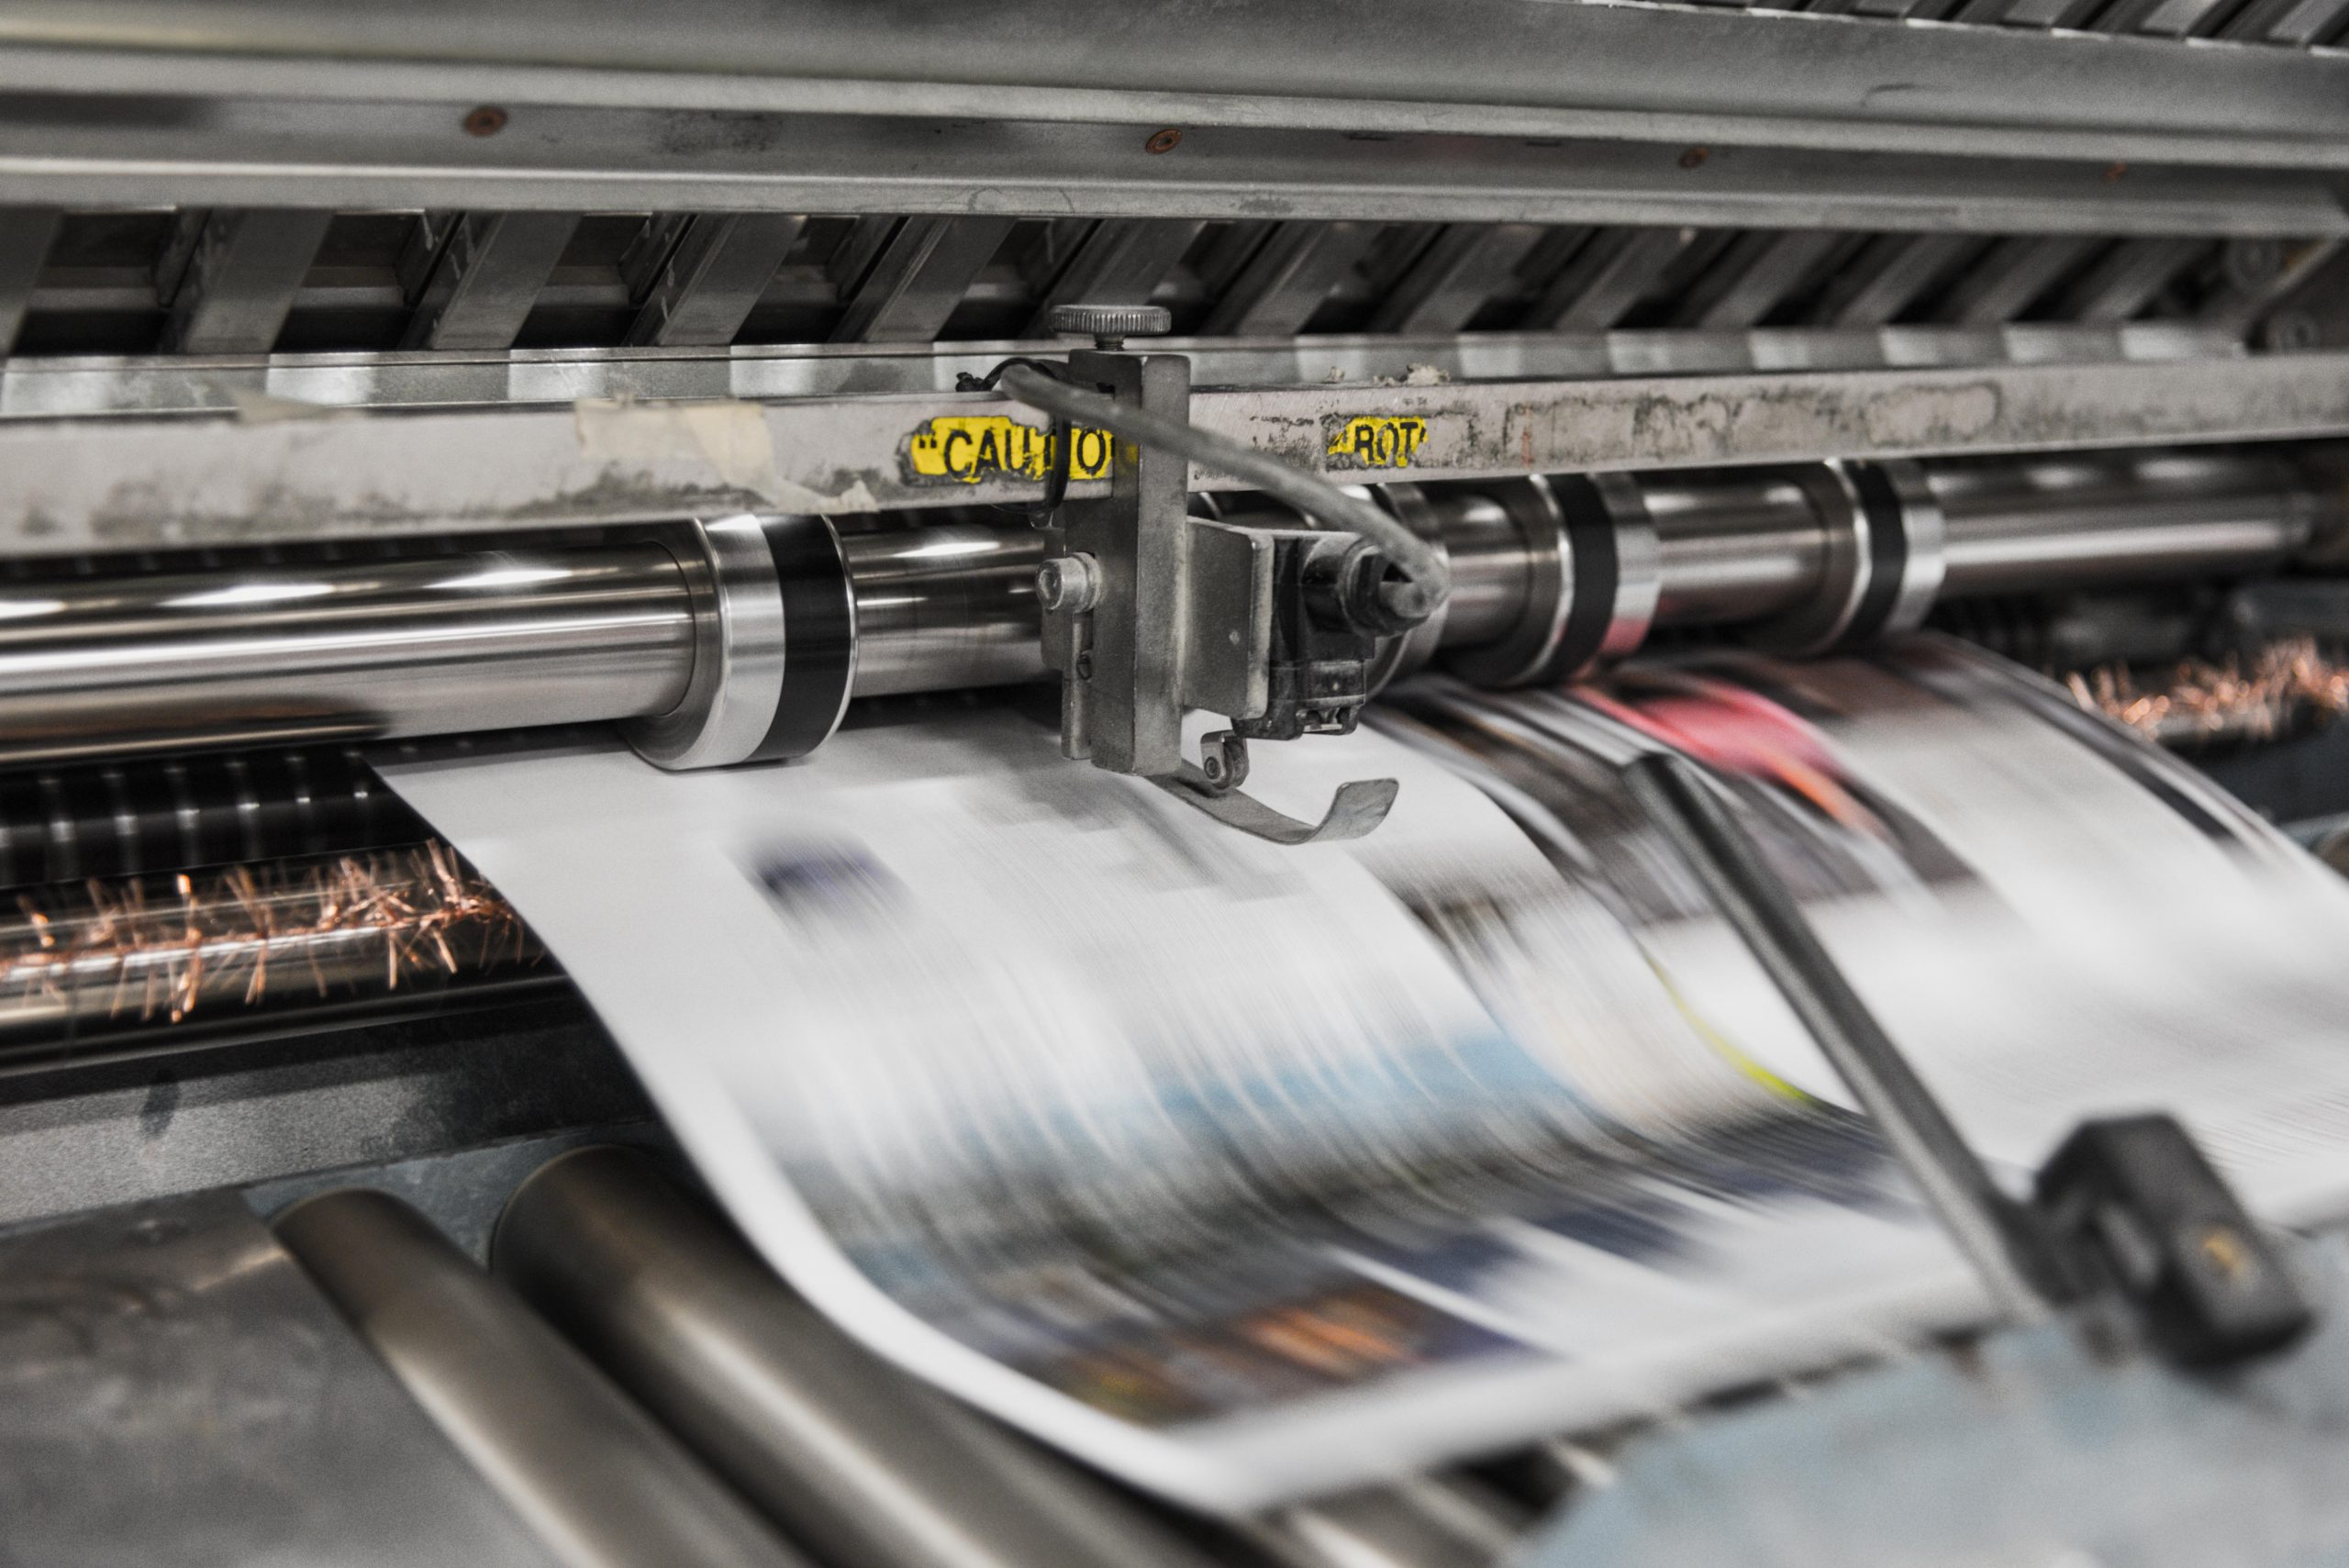 A printing press spits out newspapers